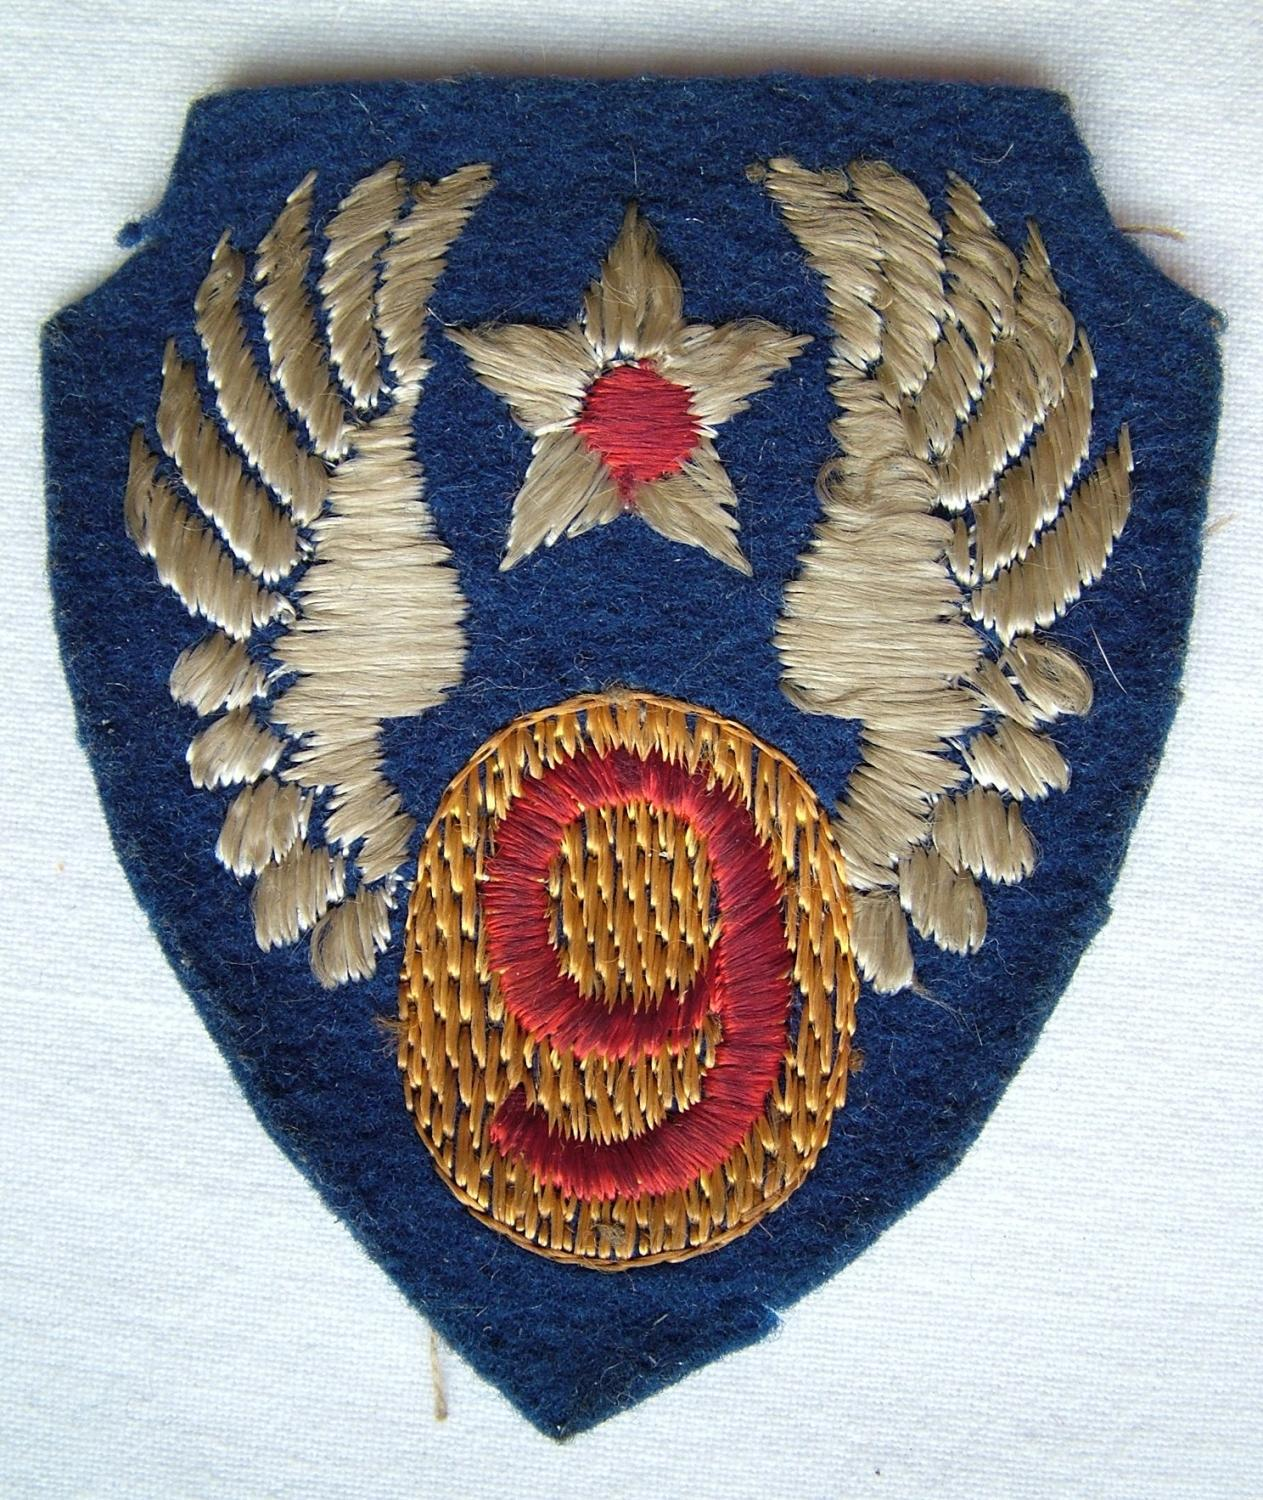 USAAF 9th AAF Shoulder Patch - English Made